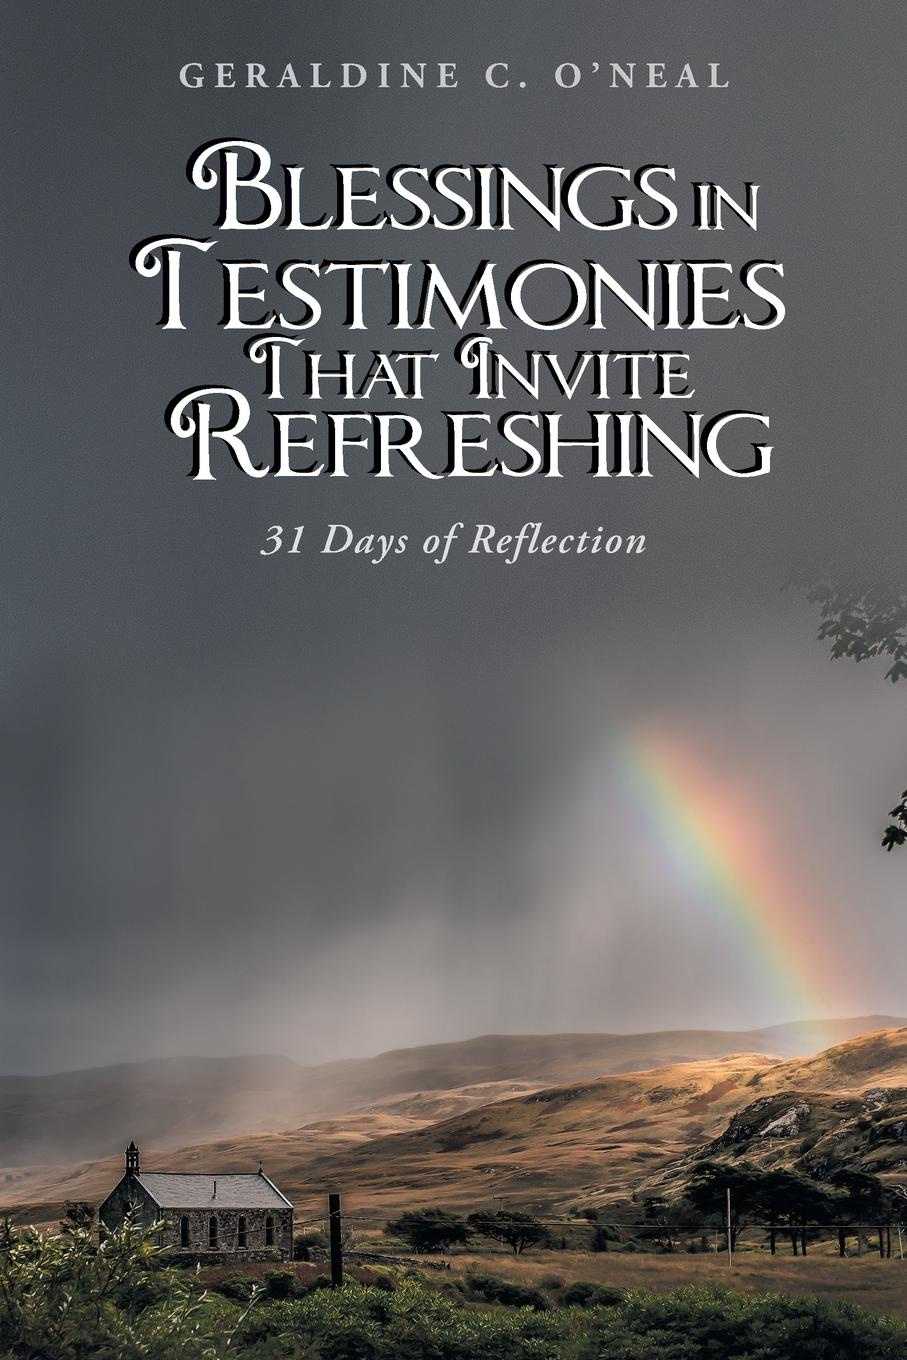 Geraldine C. O'Neal Blessings in Testimonies That Invite Refreshing. 31 Days of Reflection olukayode oyediran he leadeth me autobiographical testimonies of olukayode oyediran